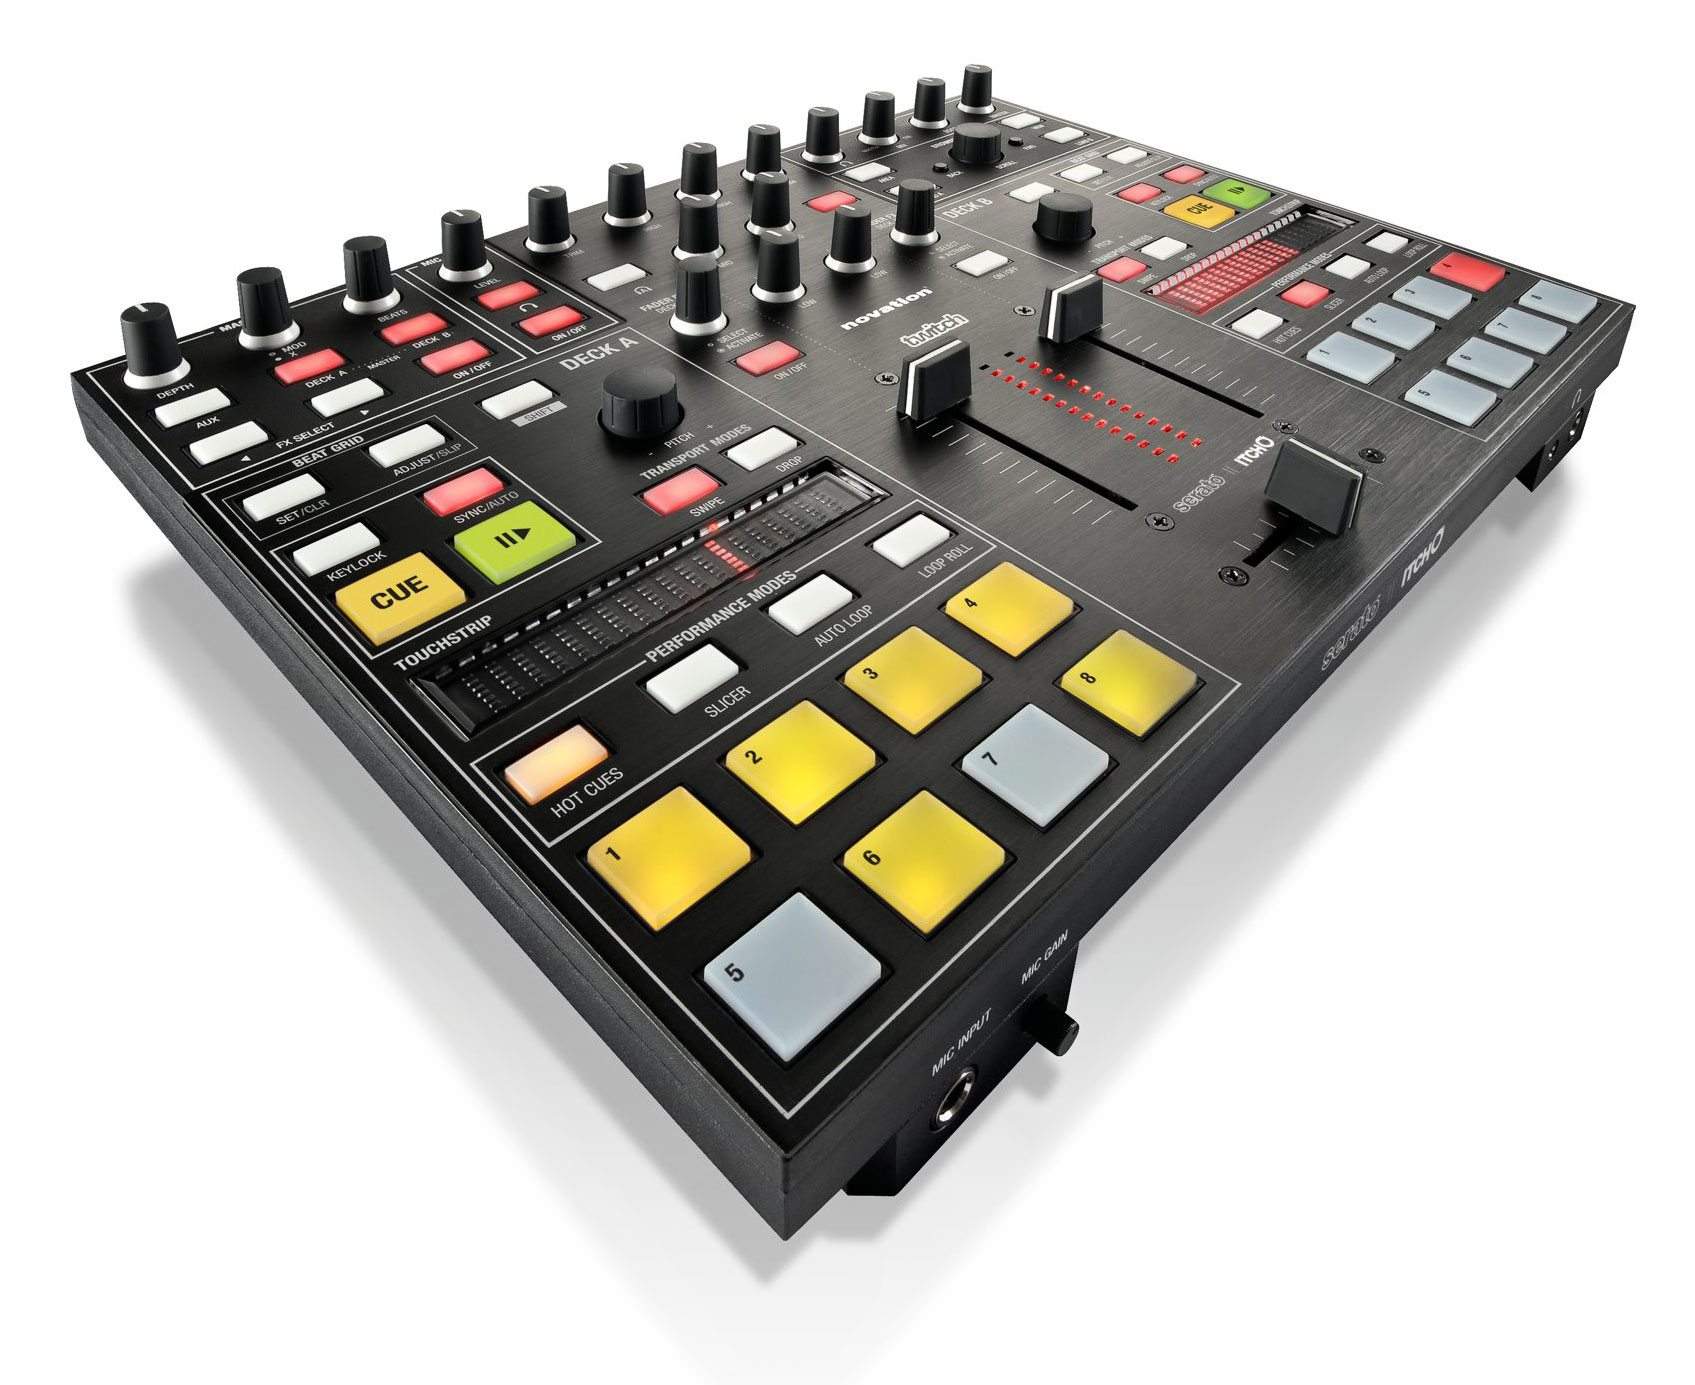 Tracing the DNA of the Rane SEVENTY TWO 6